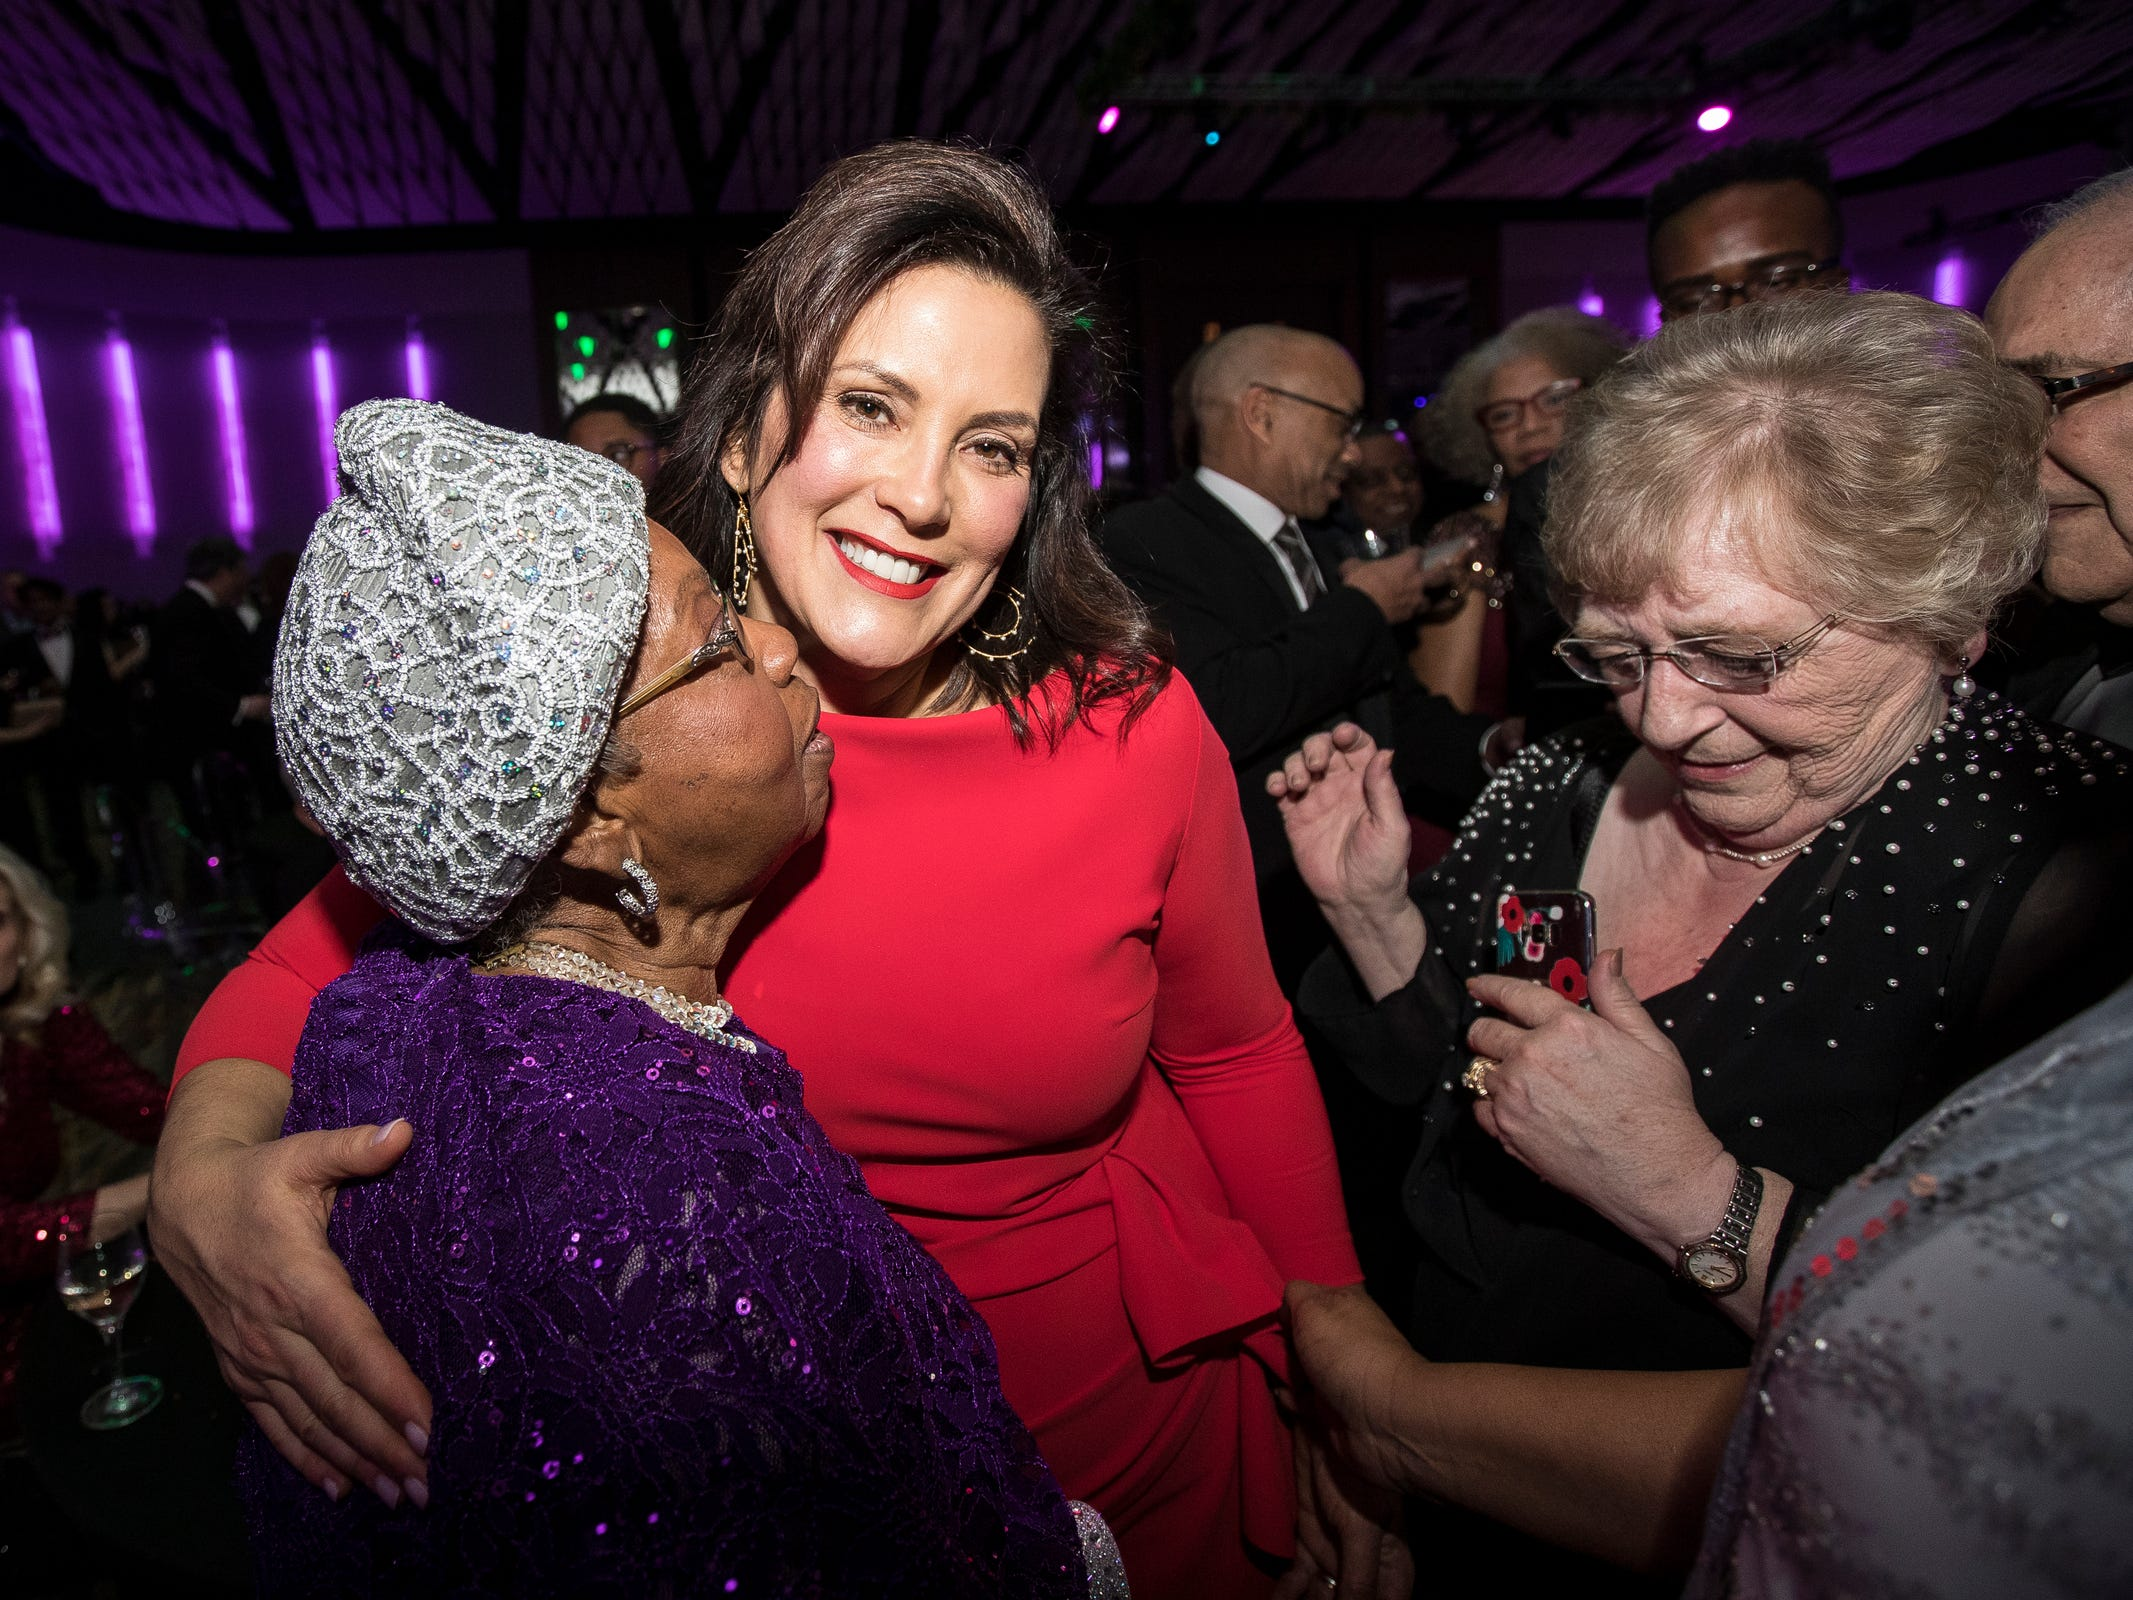 Former state representative Alma Stallworth hugs Governor Gretchen Whitmer during the inaugural ball at Cobo Center in Detroit on Tuesday, Jan. 1, 2019.